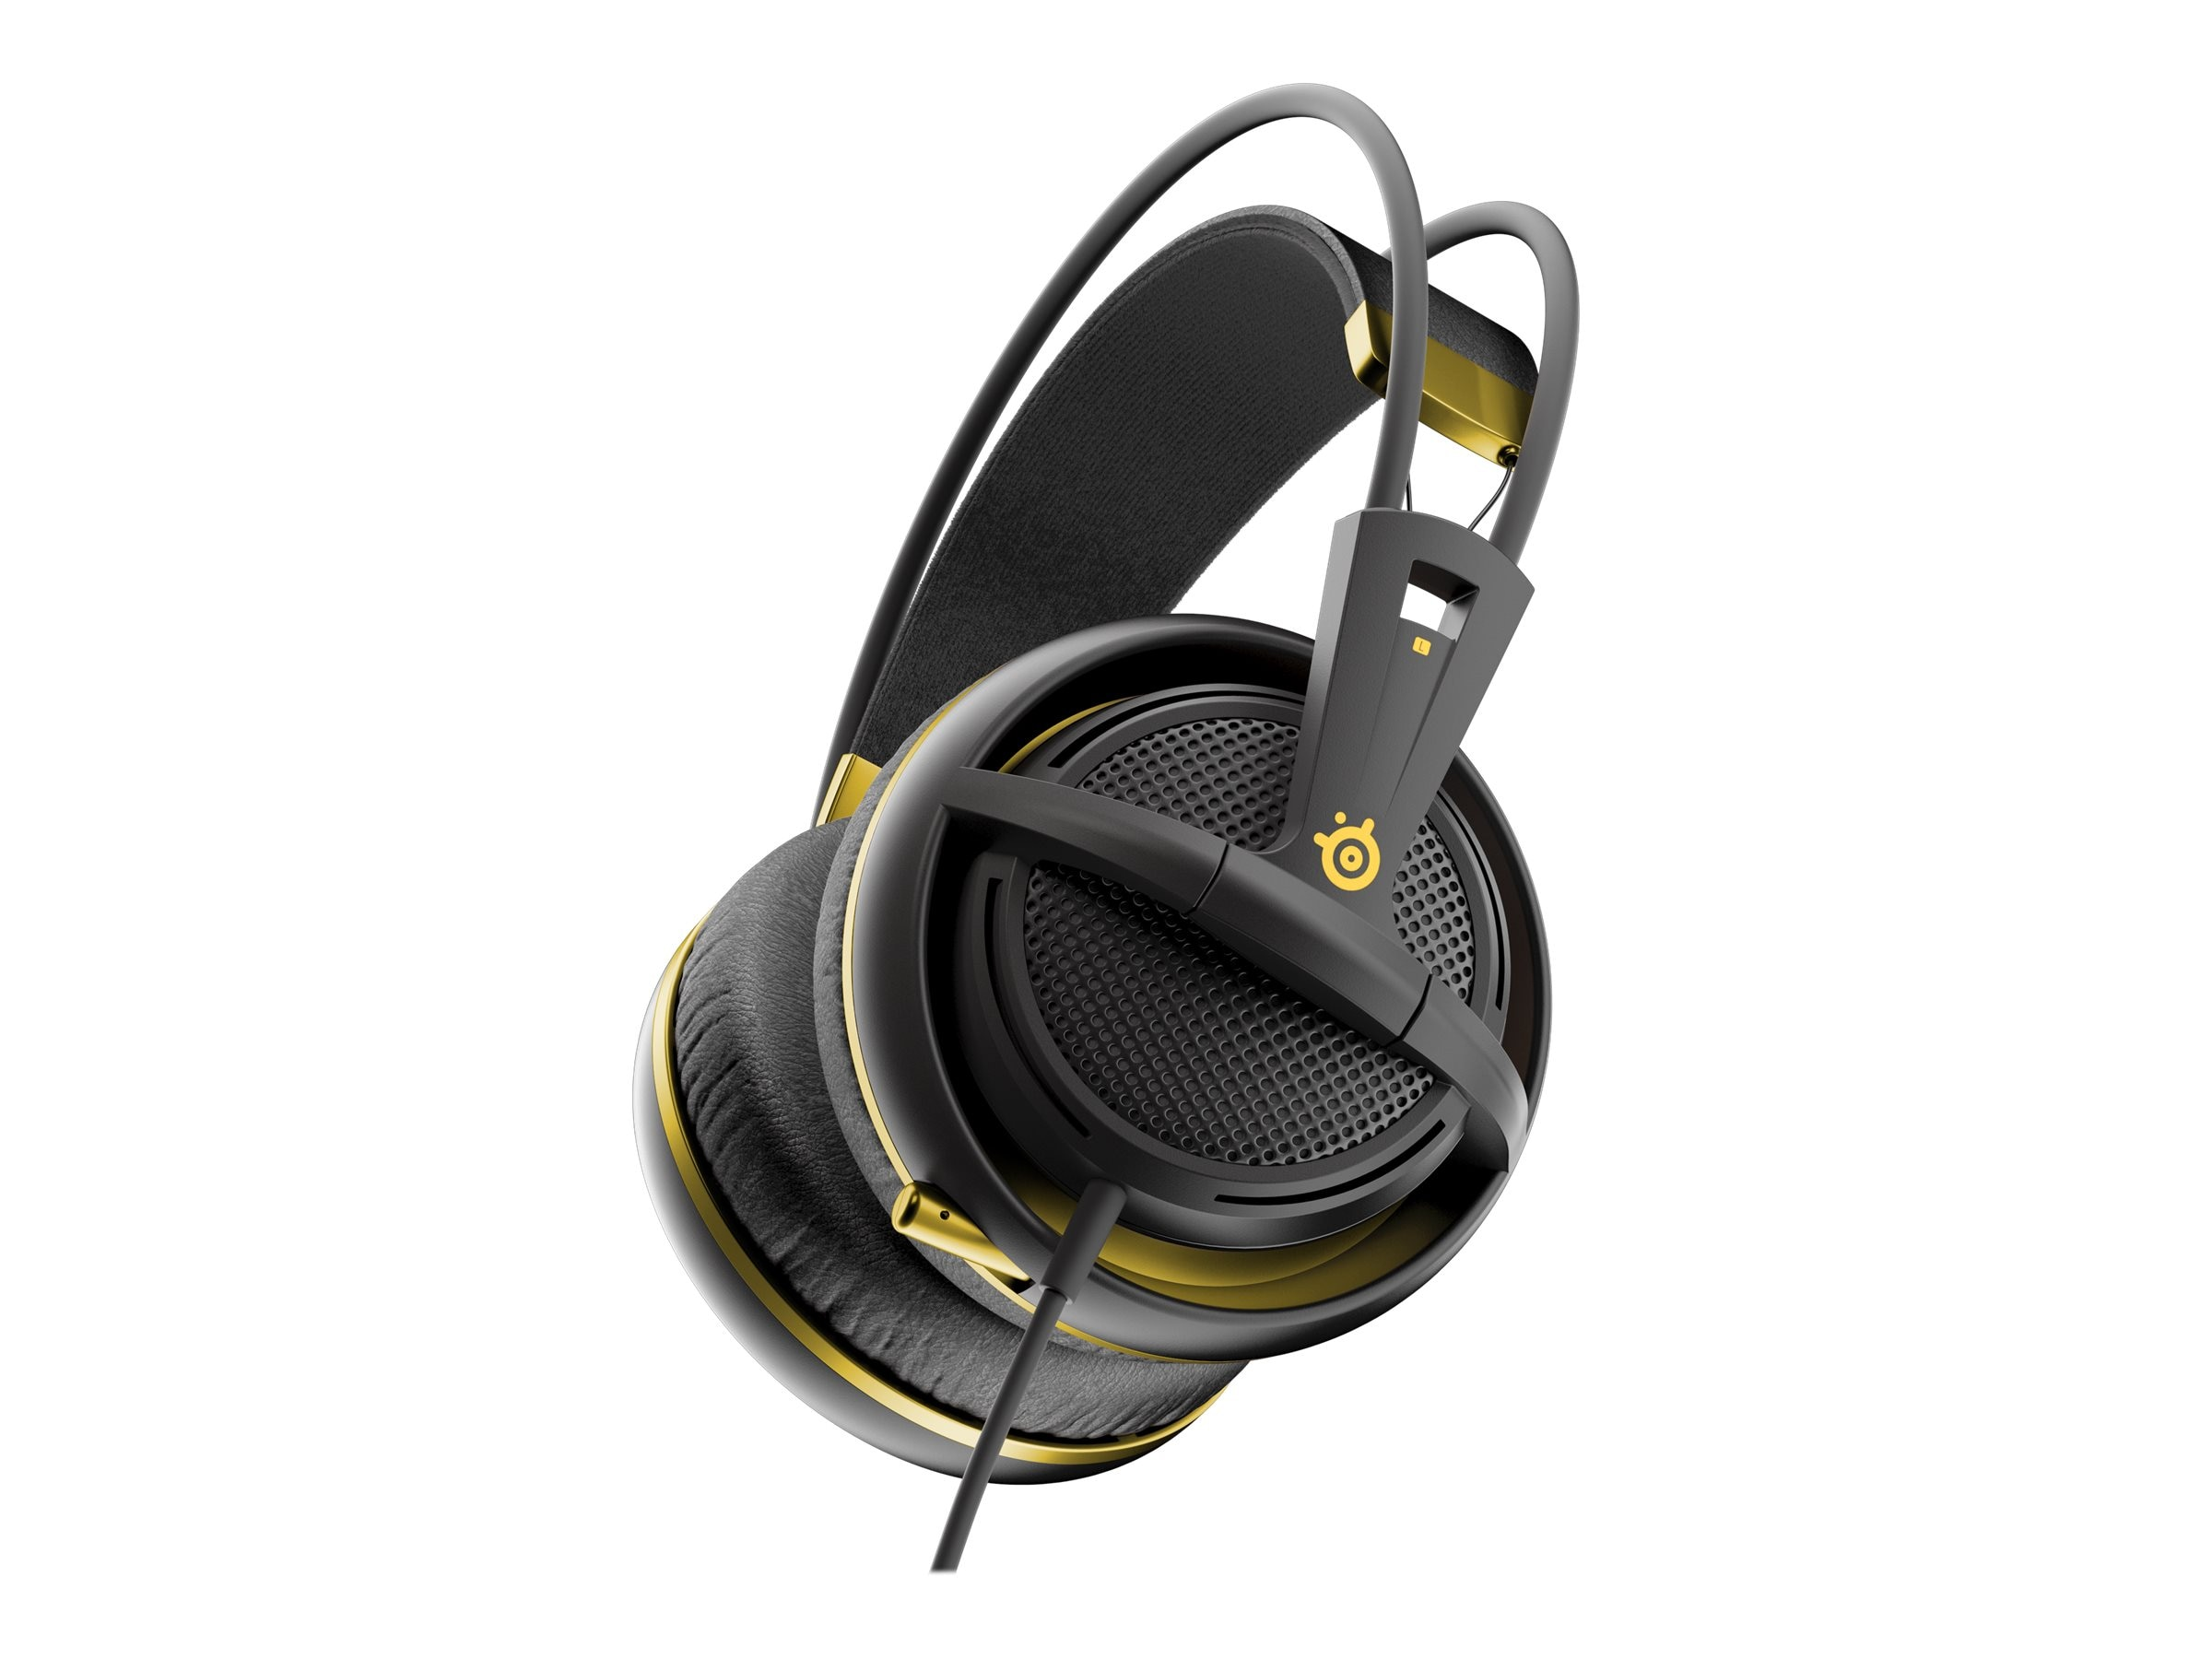 Steelseries Siberia 200 Headset - Gold